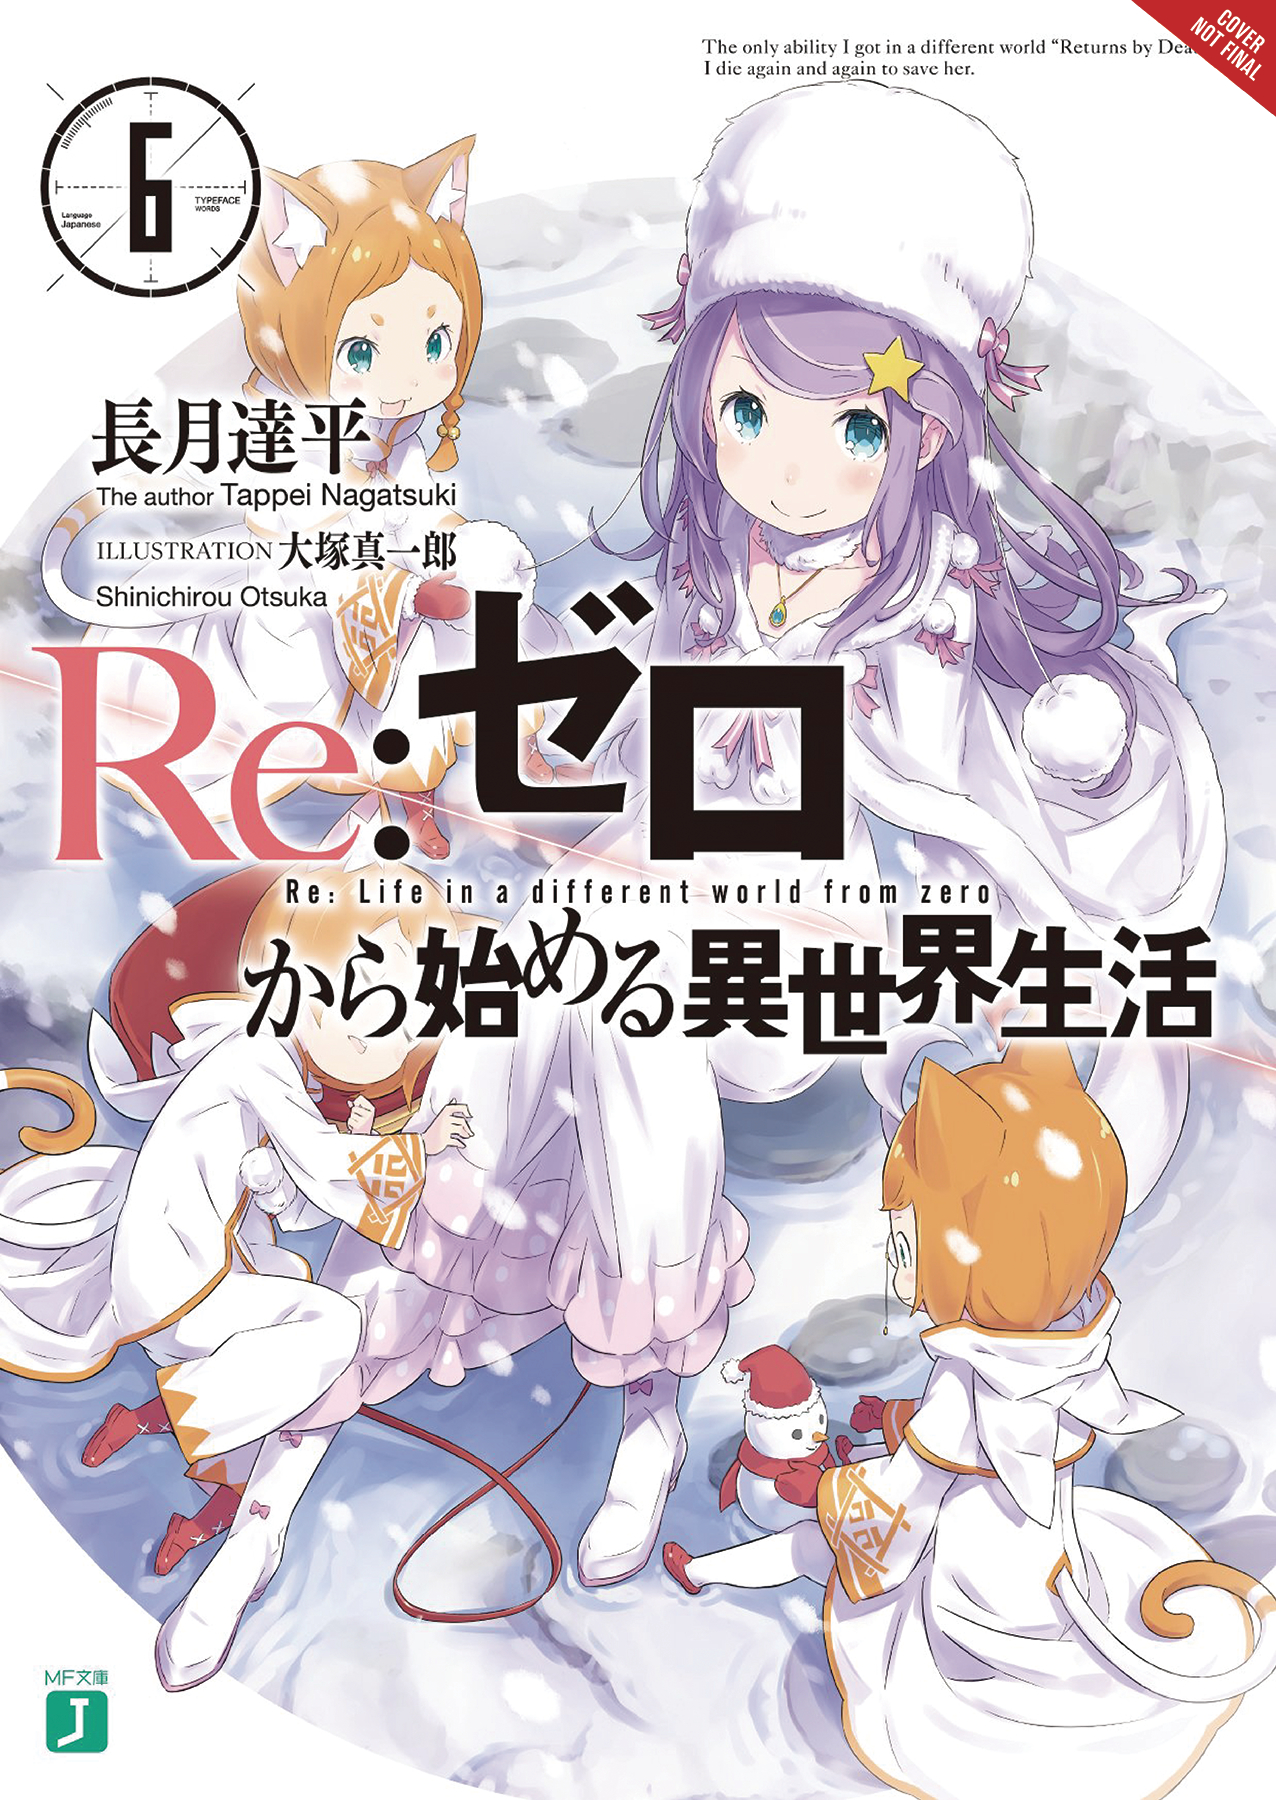 RE ZERO SLIAW LIGHT NOVEL SC VOL 06